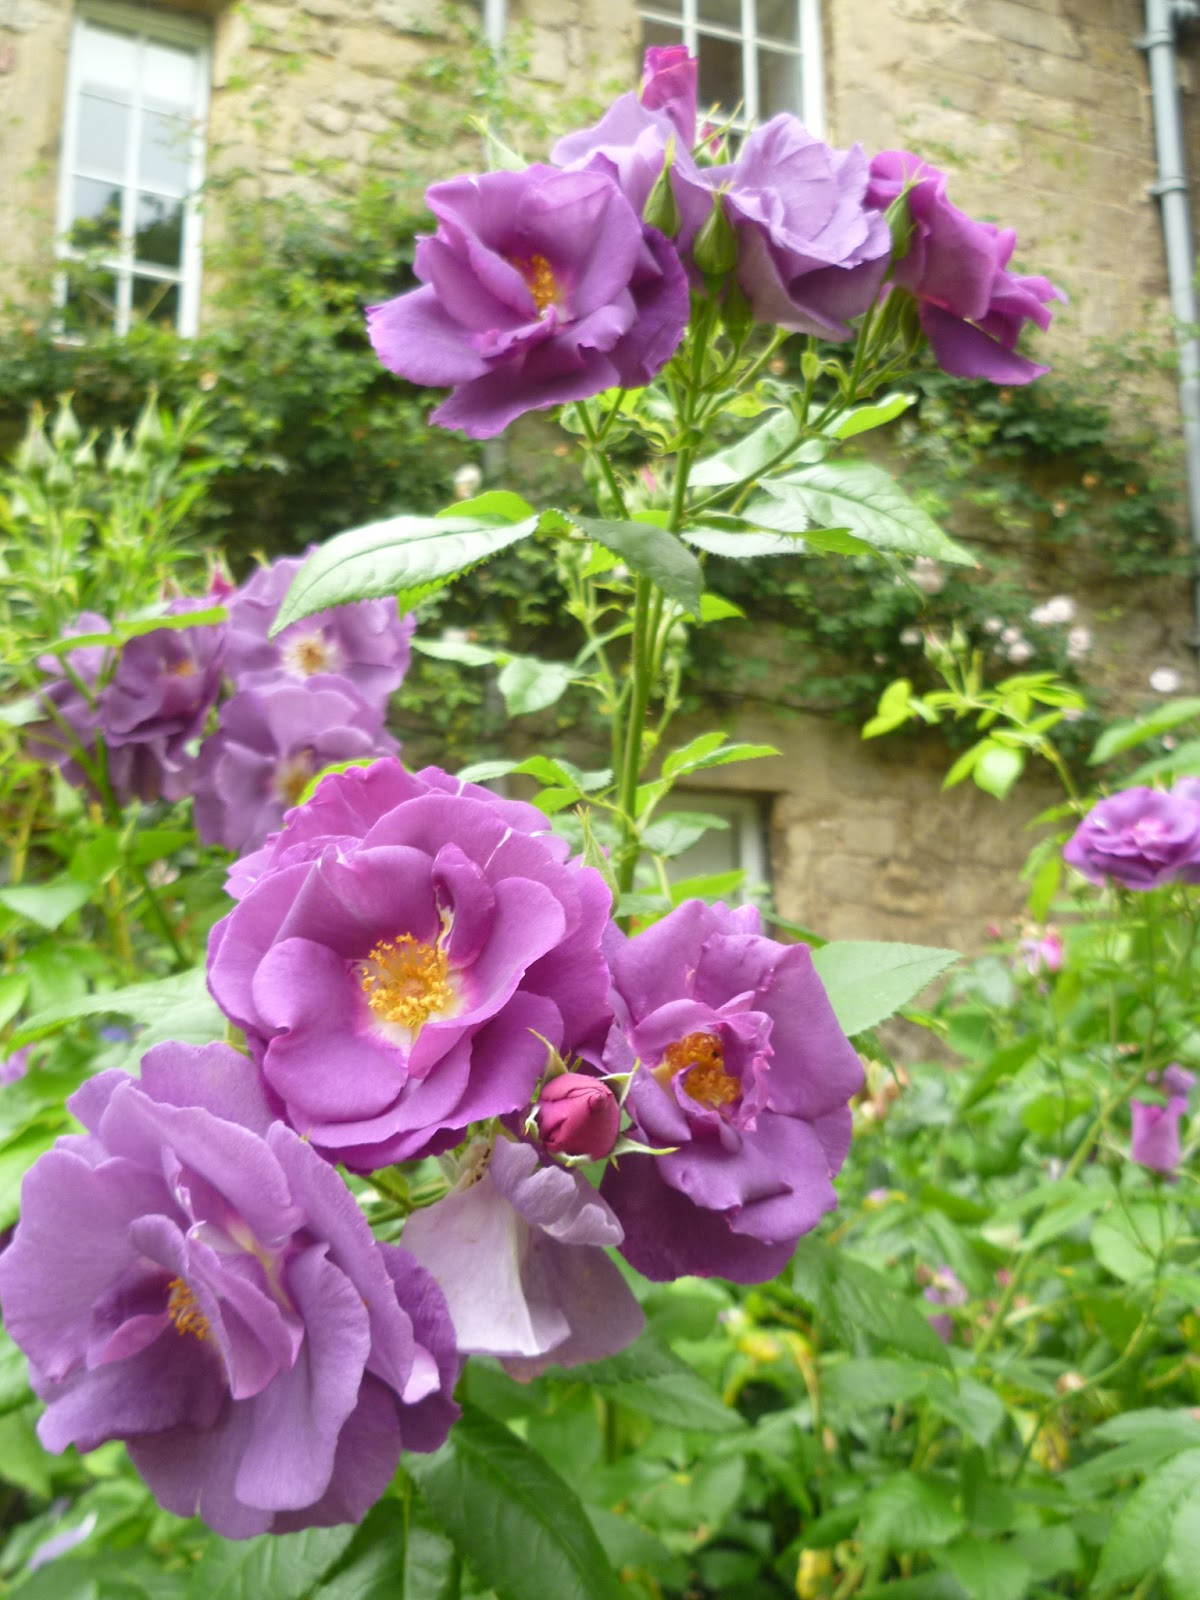 Worcester college gardeners rose rhapsody in blue on each stem are large clusters of sweet scented semi double flowers that seem to change colour as they mature purple mauve and the blueish for which izmirmasajfo